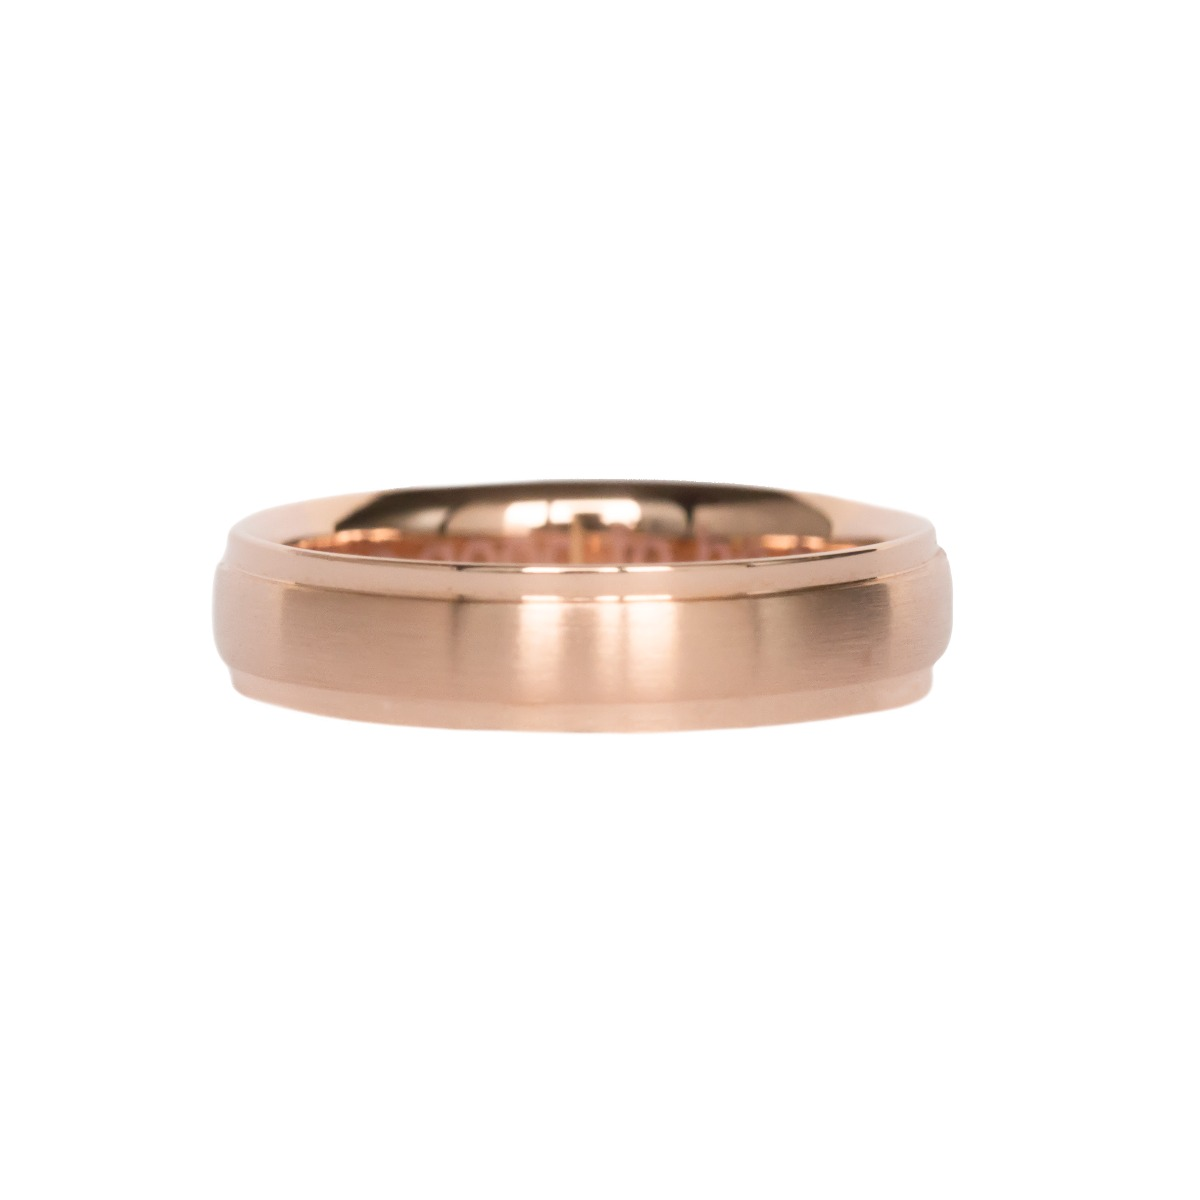 Men's Comfort Fit Wedding Band with Brushed Center and Shiny Edges in Rose Gold (5mm)